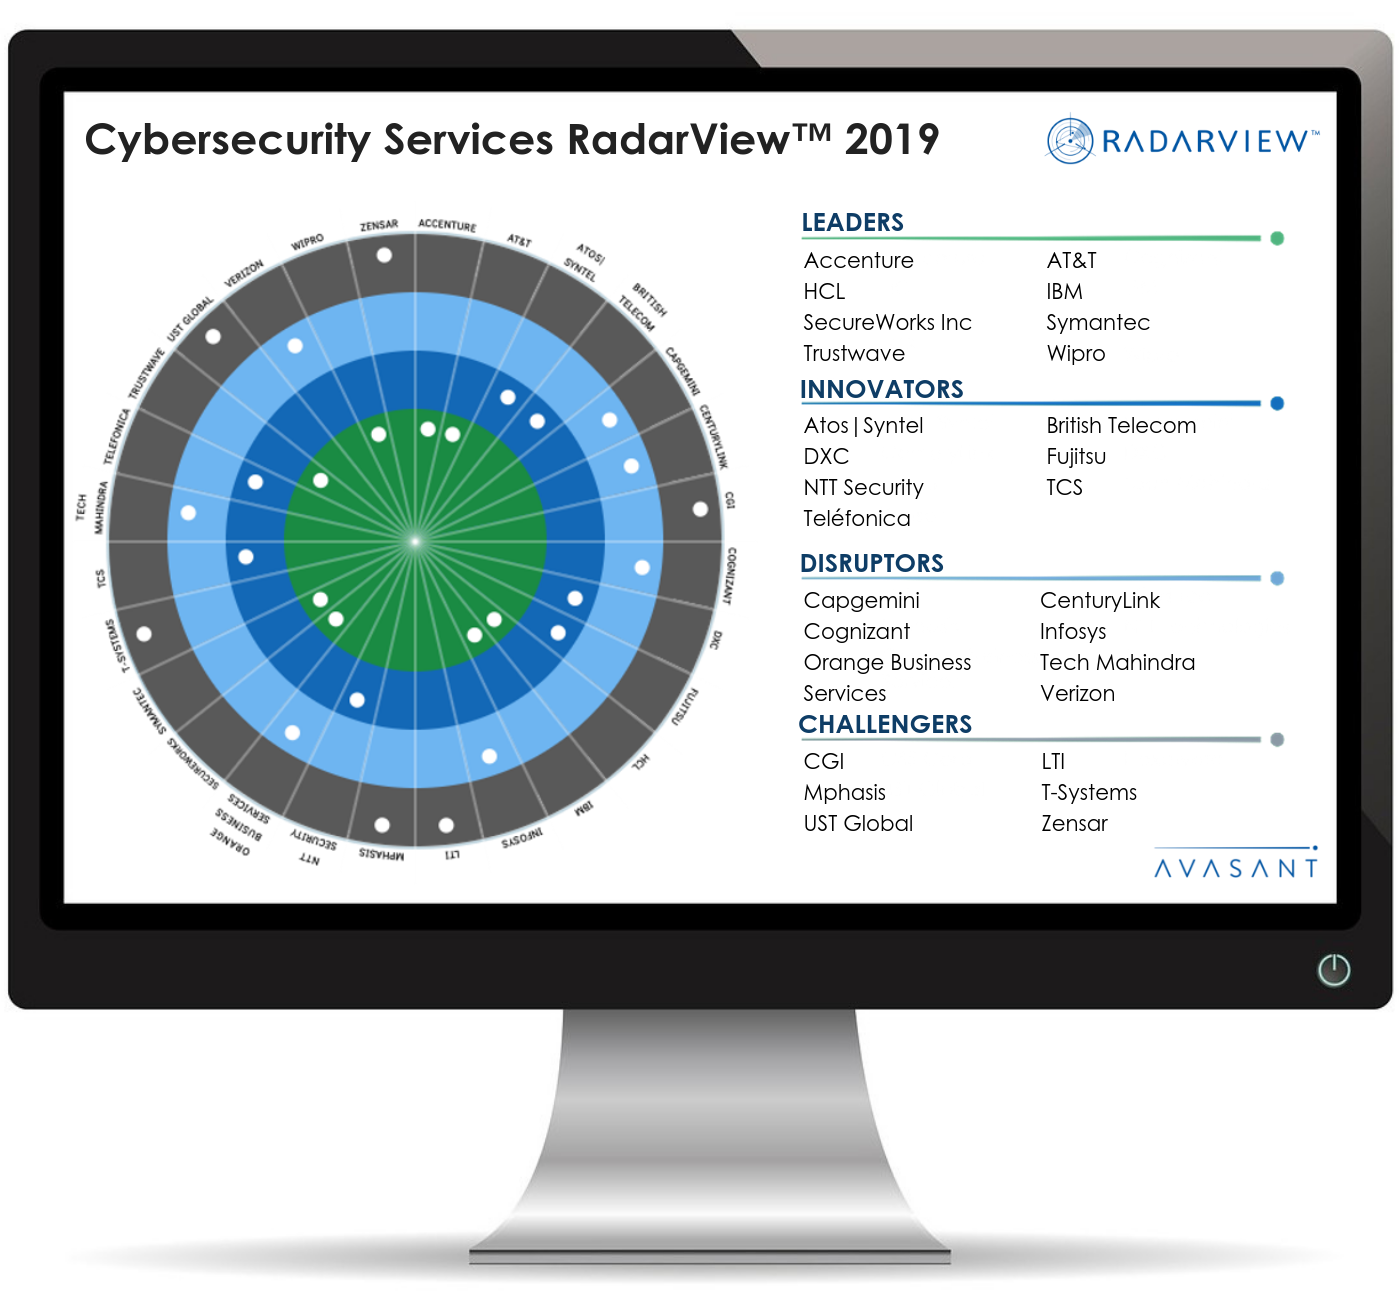 Copy of Copy of Ai and Applied Analytics full 2 - Cybersecurity Services 2019 LTI RadarView™ Profile